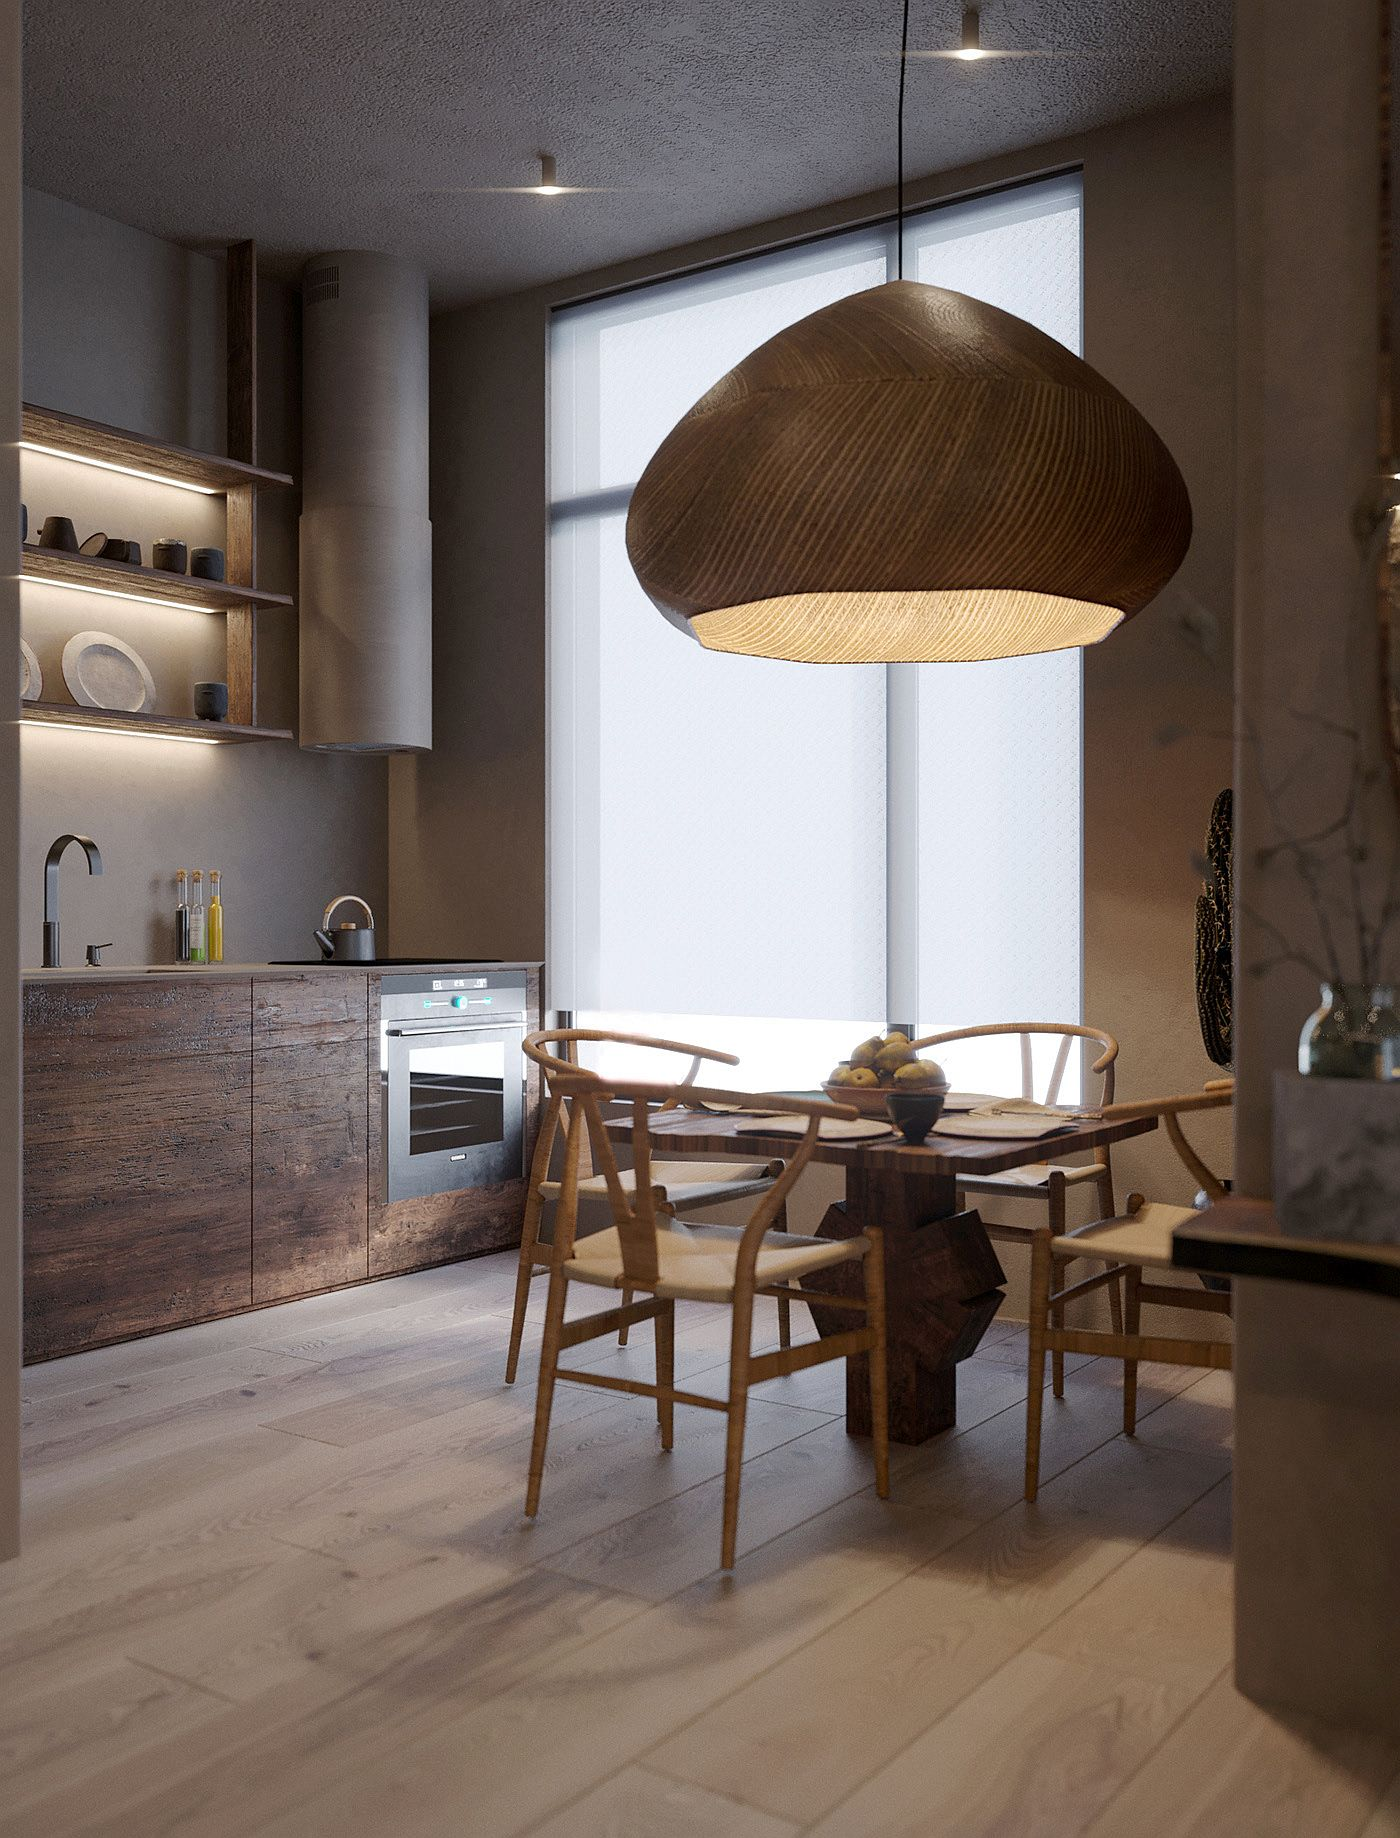 Kitchen in wood is space-savvy and modern at the same time